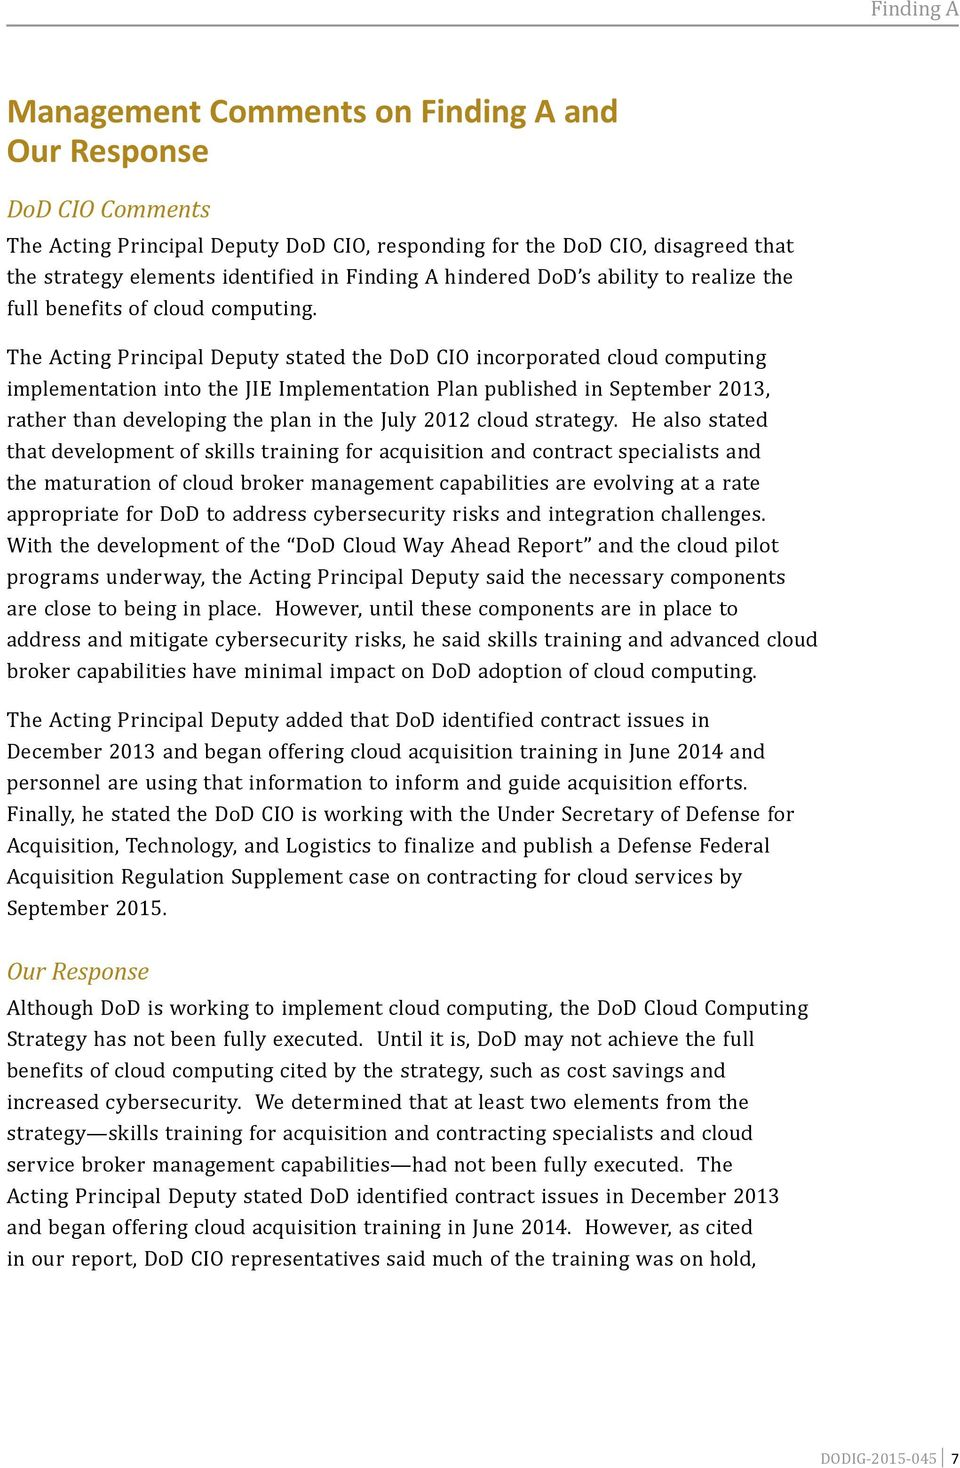 The Acting Principal Deputy stated the DoD CIO incorporated cloud computing implementation into the JIE Implementation Plan published in September 2013, rather than developing the plan in the July